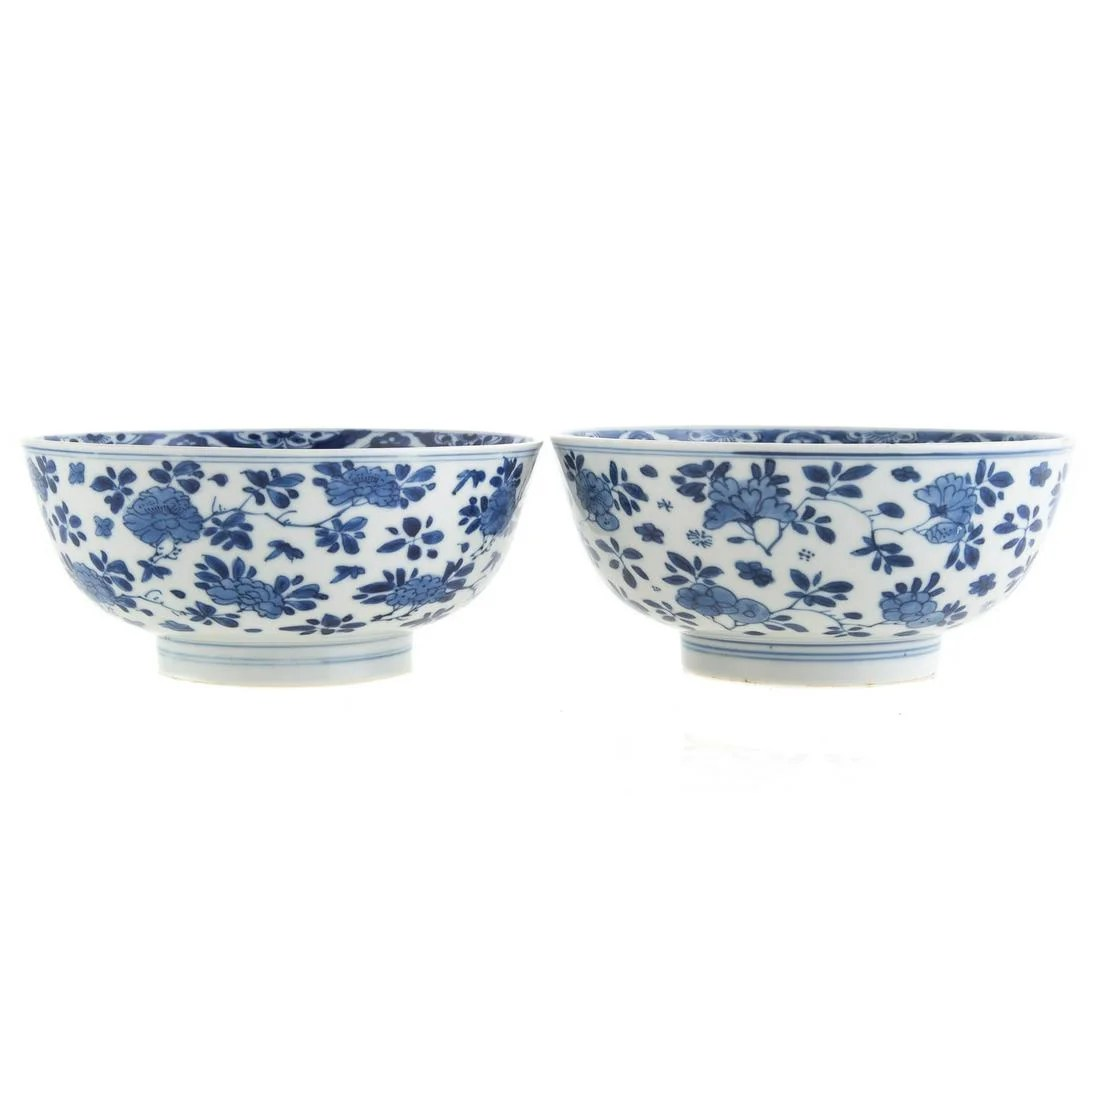 Pair of Chinese Kangxi Blue and White Porcelain Bowls